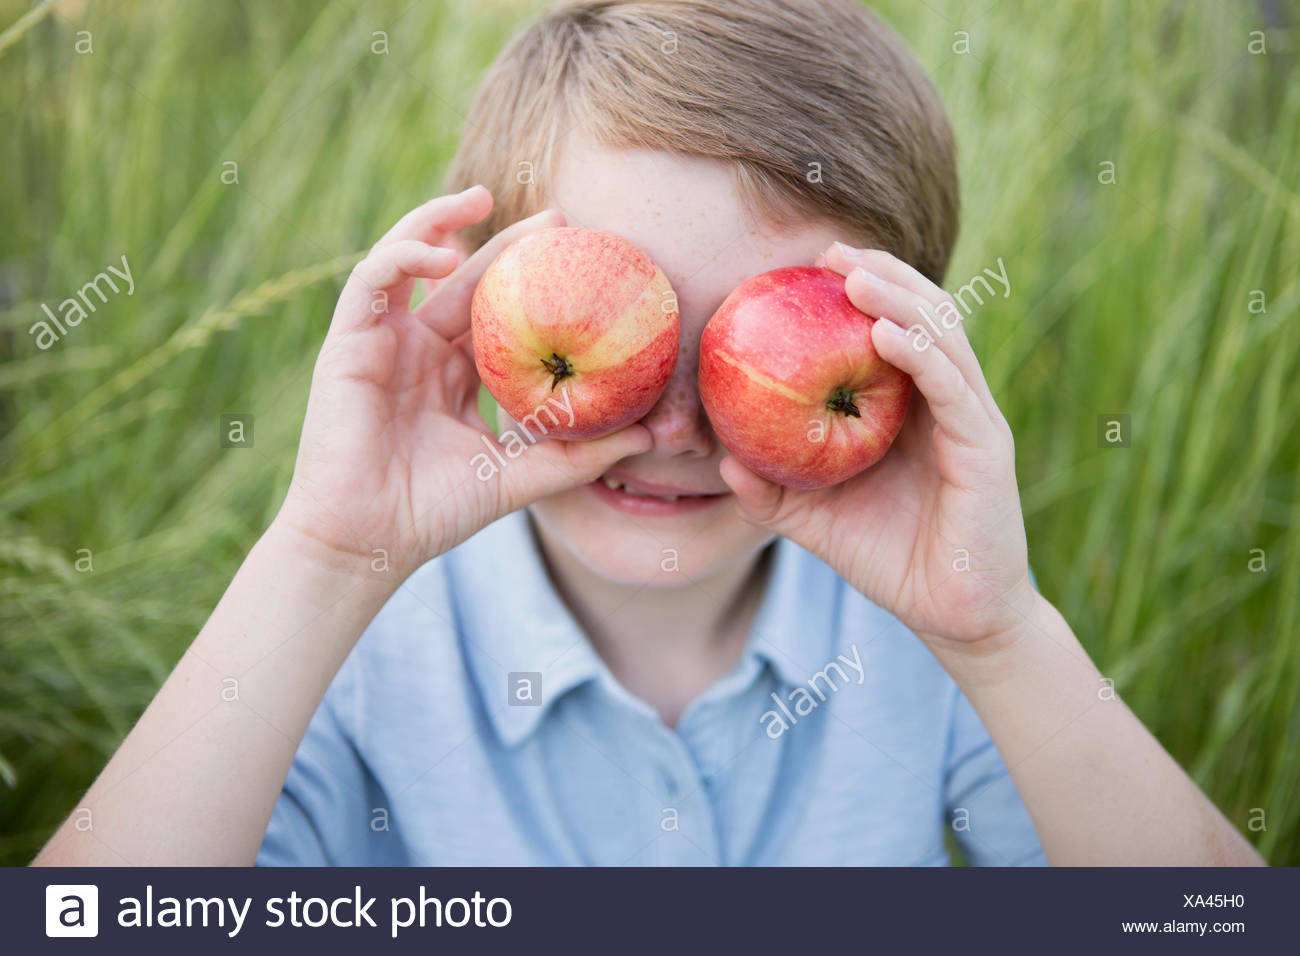 A boy holding two red skinned apples over his eyes. - Stock Image